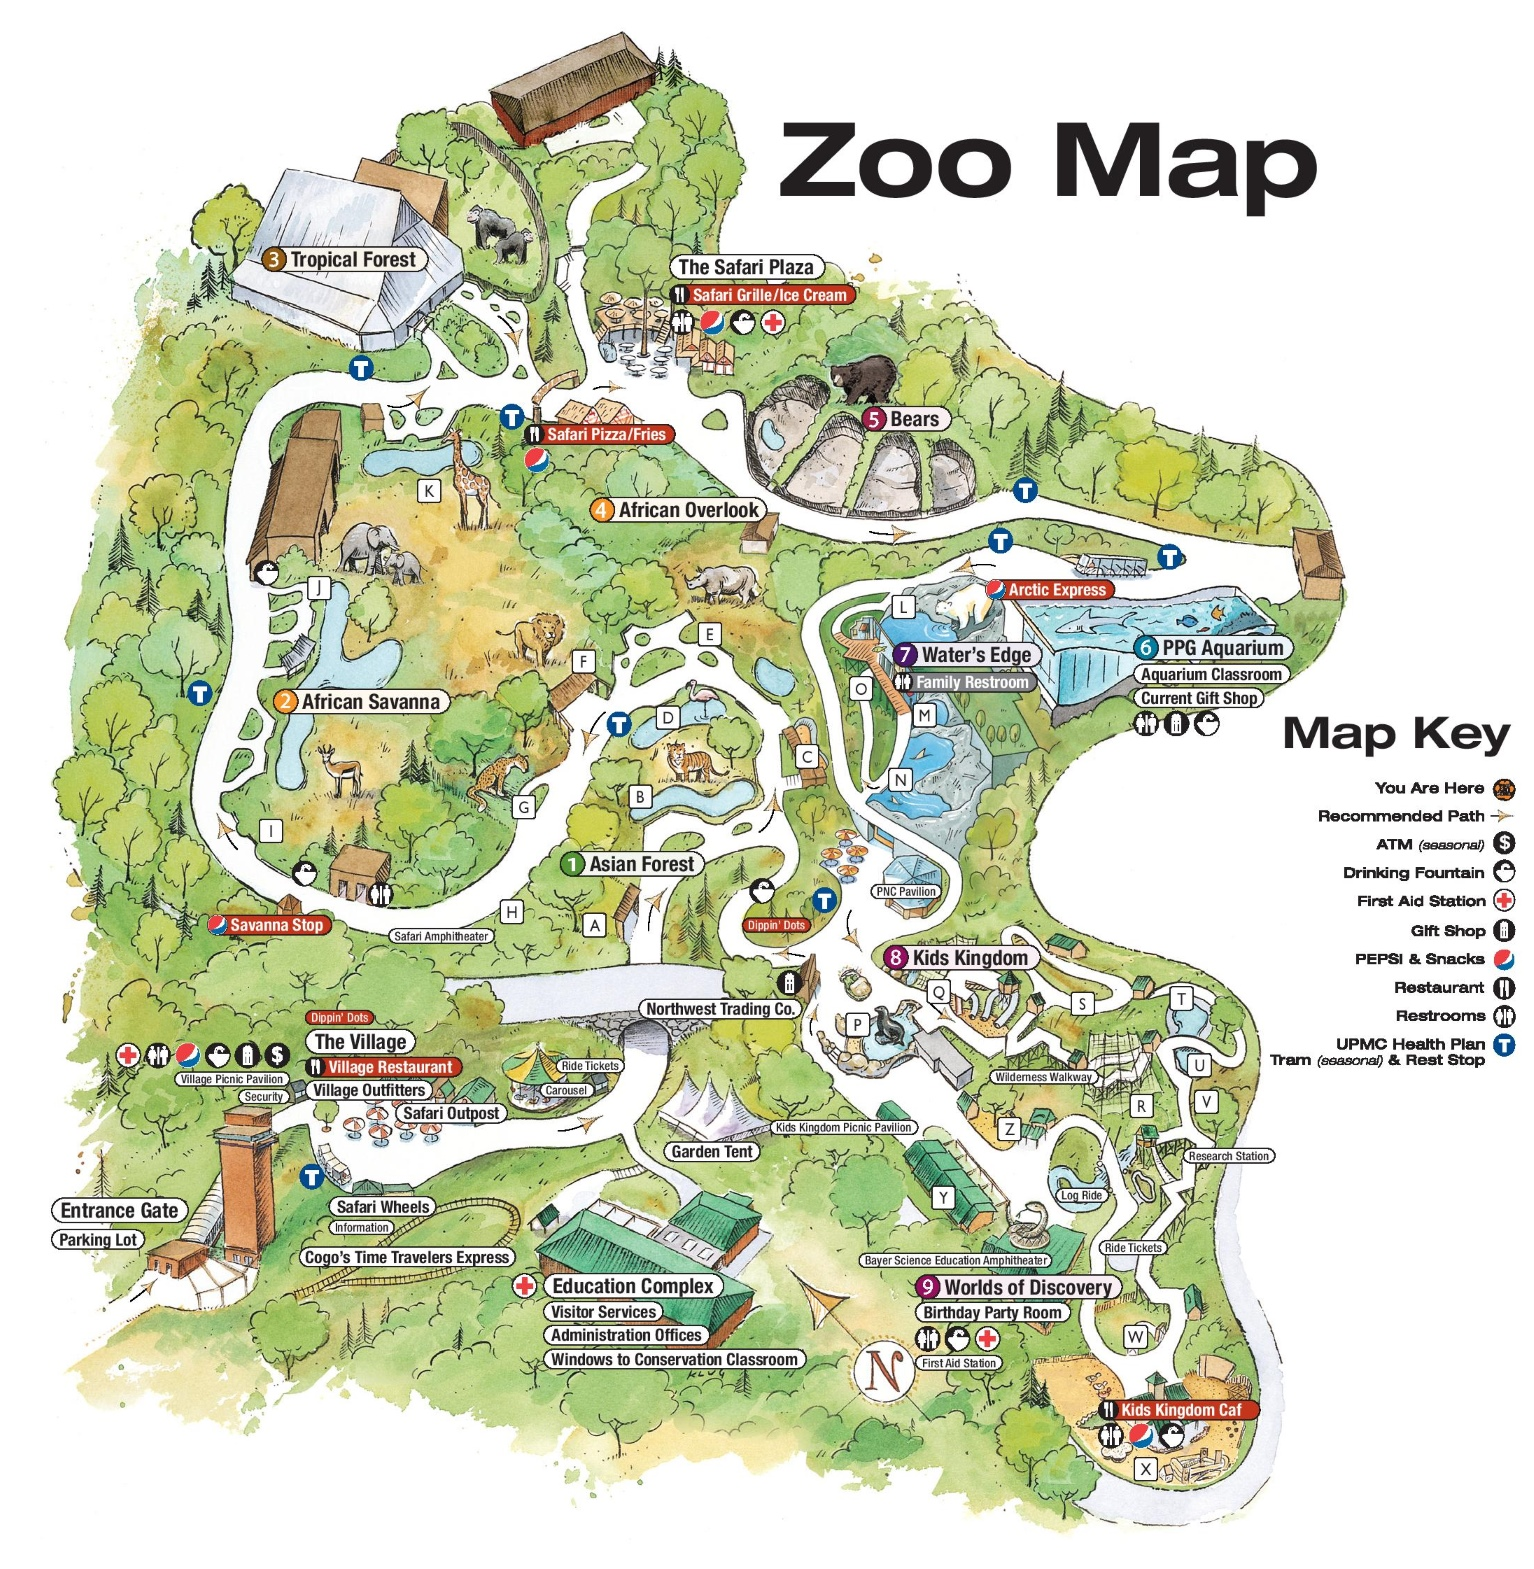 map of kentucky cities with Pittsburgh Zoo Map on Map of Hazel besides Dallas Zoo Map in addition Map Of Europe Major Cities further Mauritania Satellite Image moreover Jurassic Park Hi.